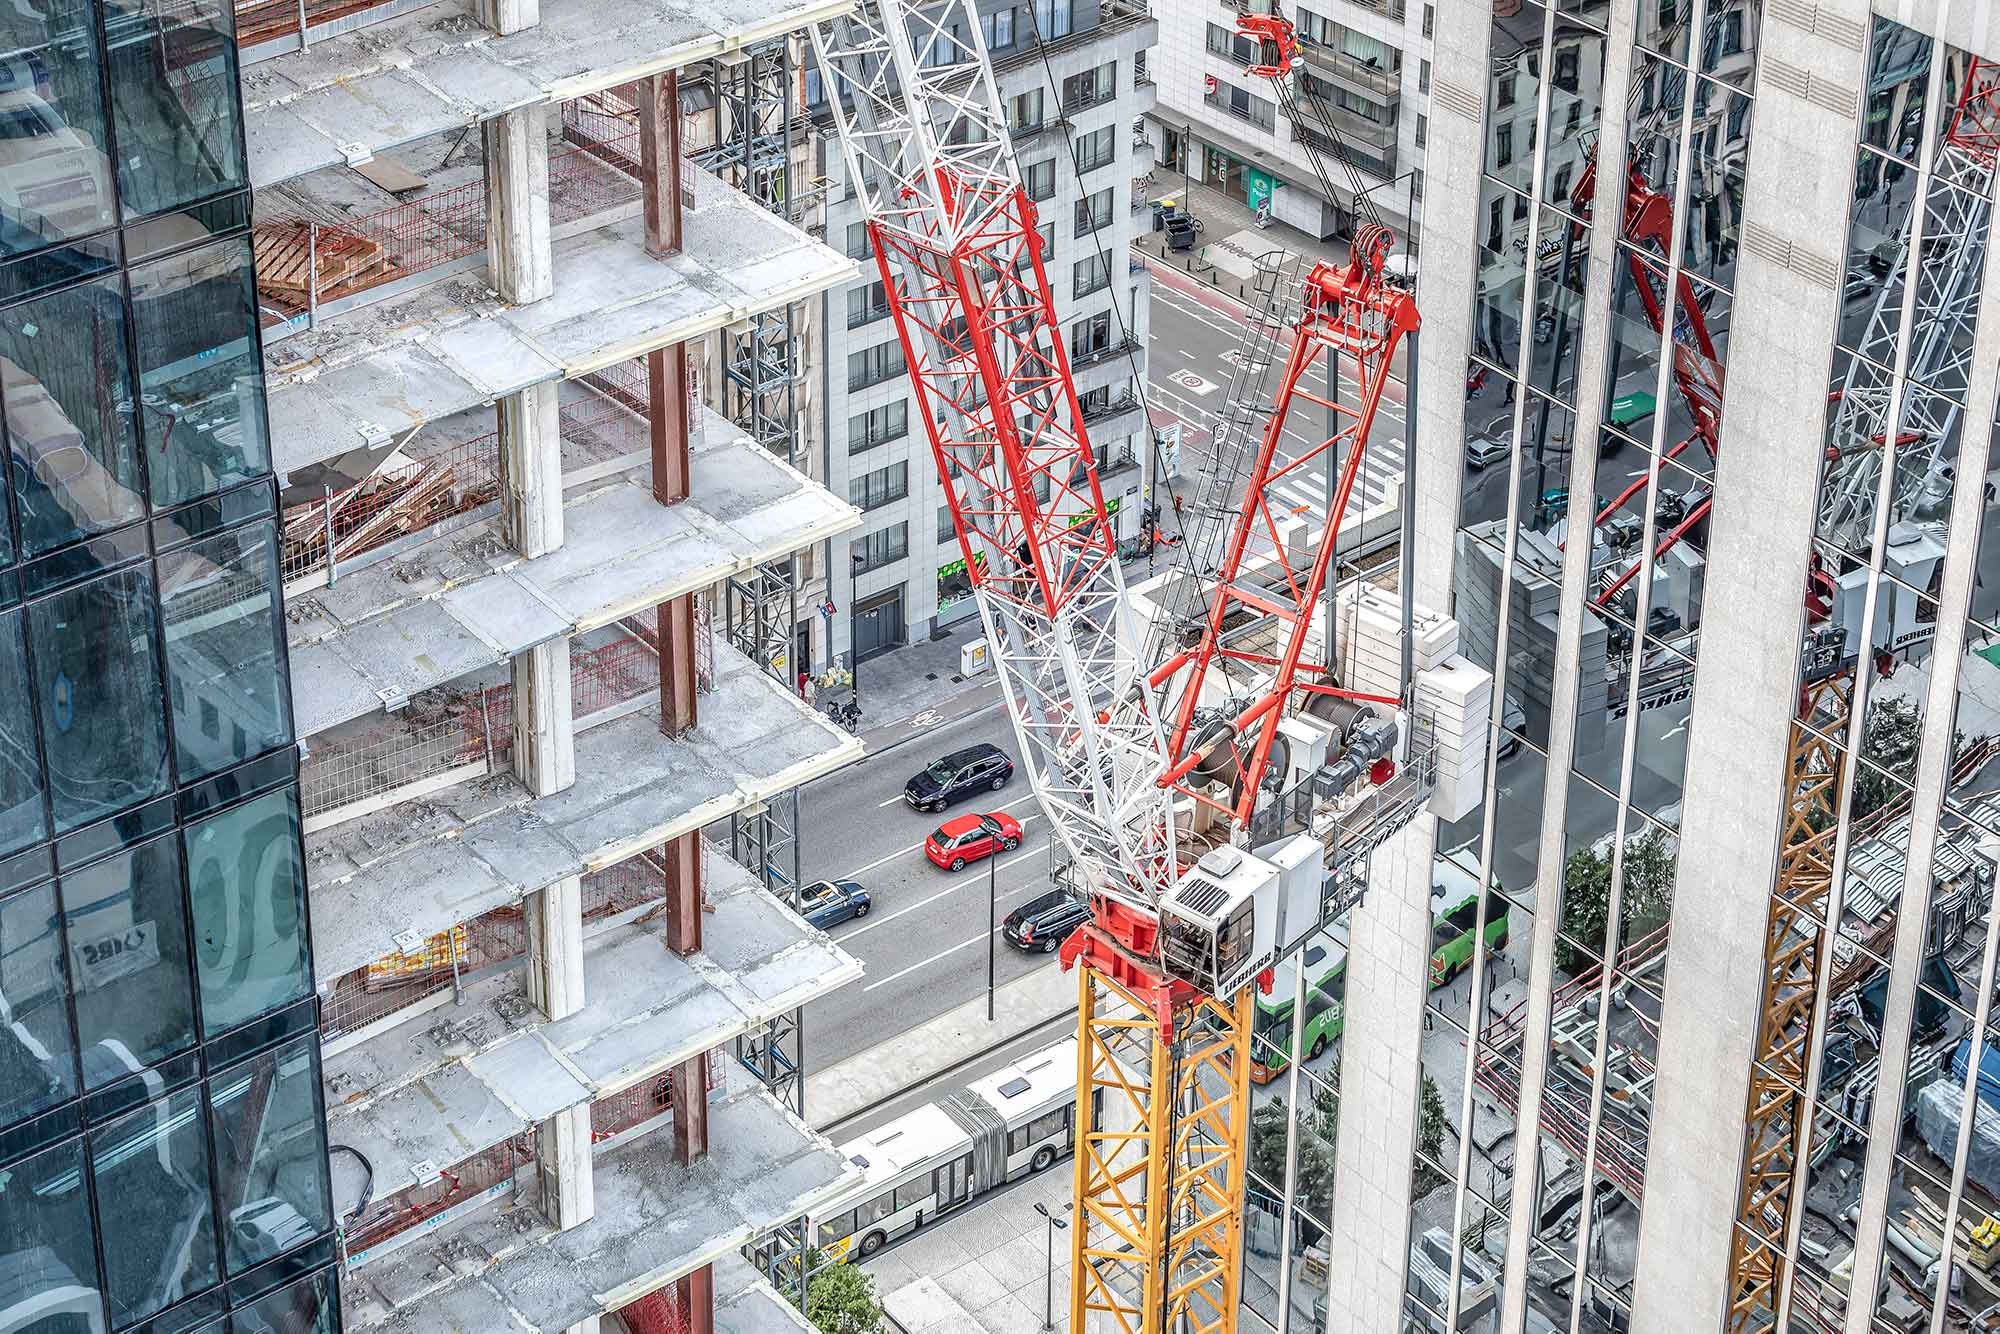 Construction_photography_pascal_vandecasteele32.jpg